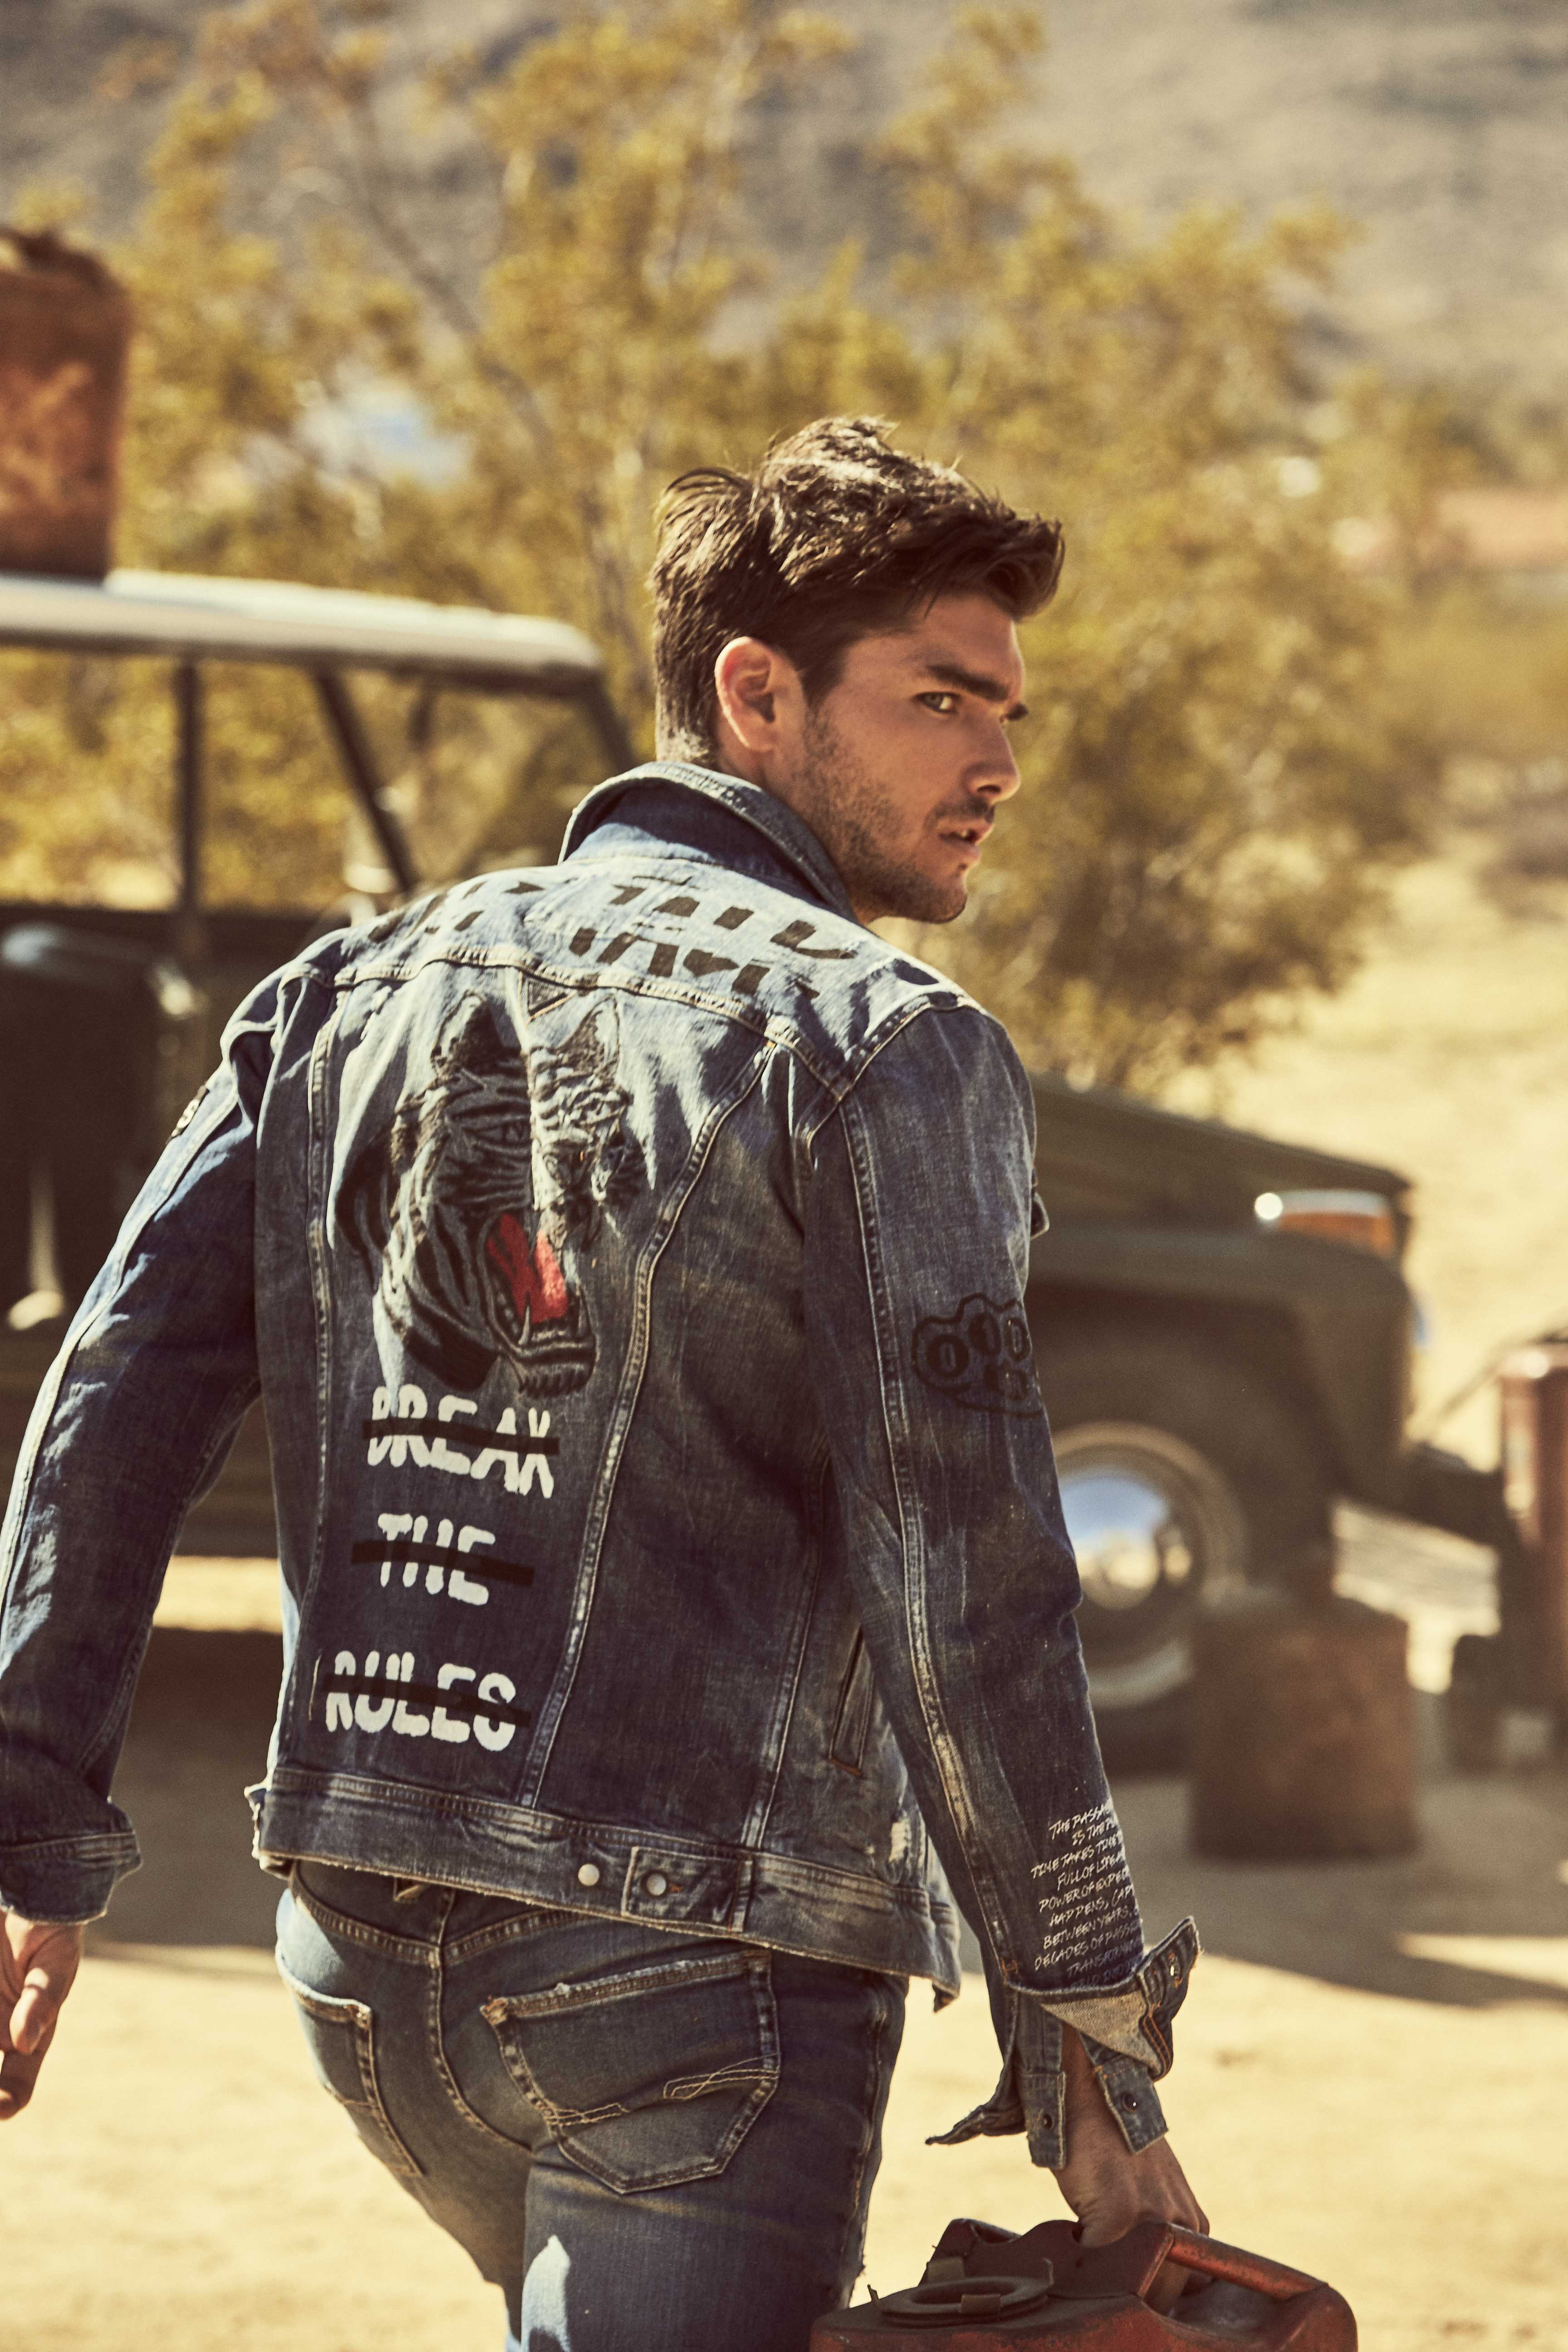 15331146814069_GUESS JEANS FW18 ADV CAMPAIGN IMAGES_J12.jpg